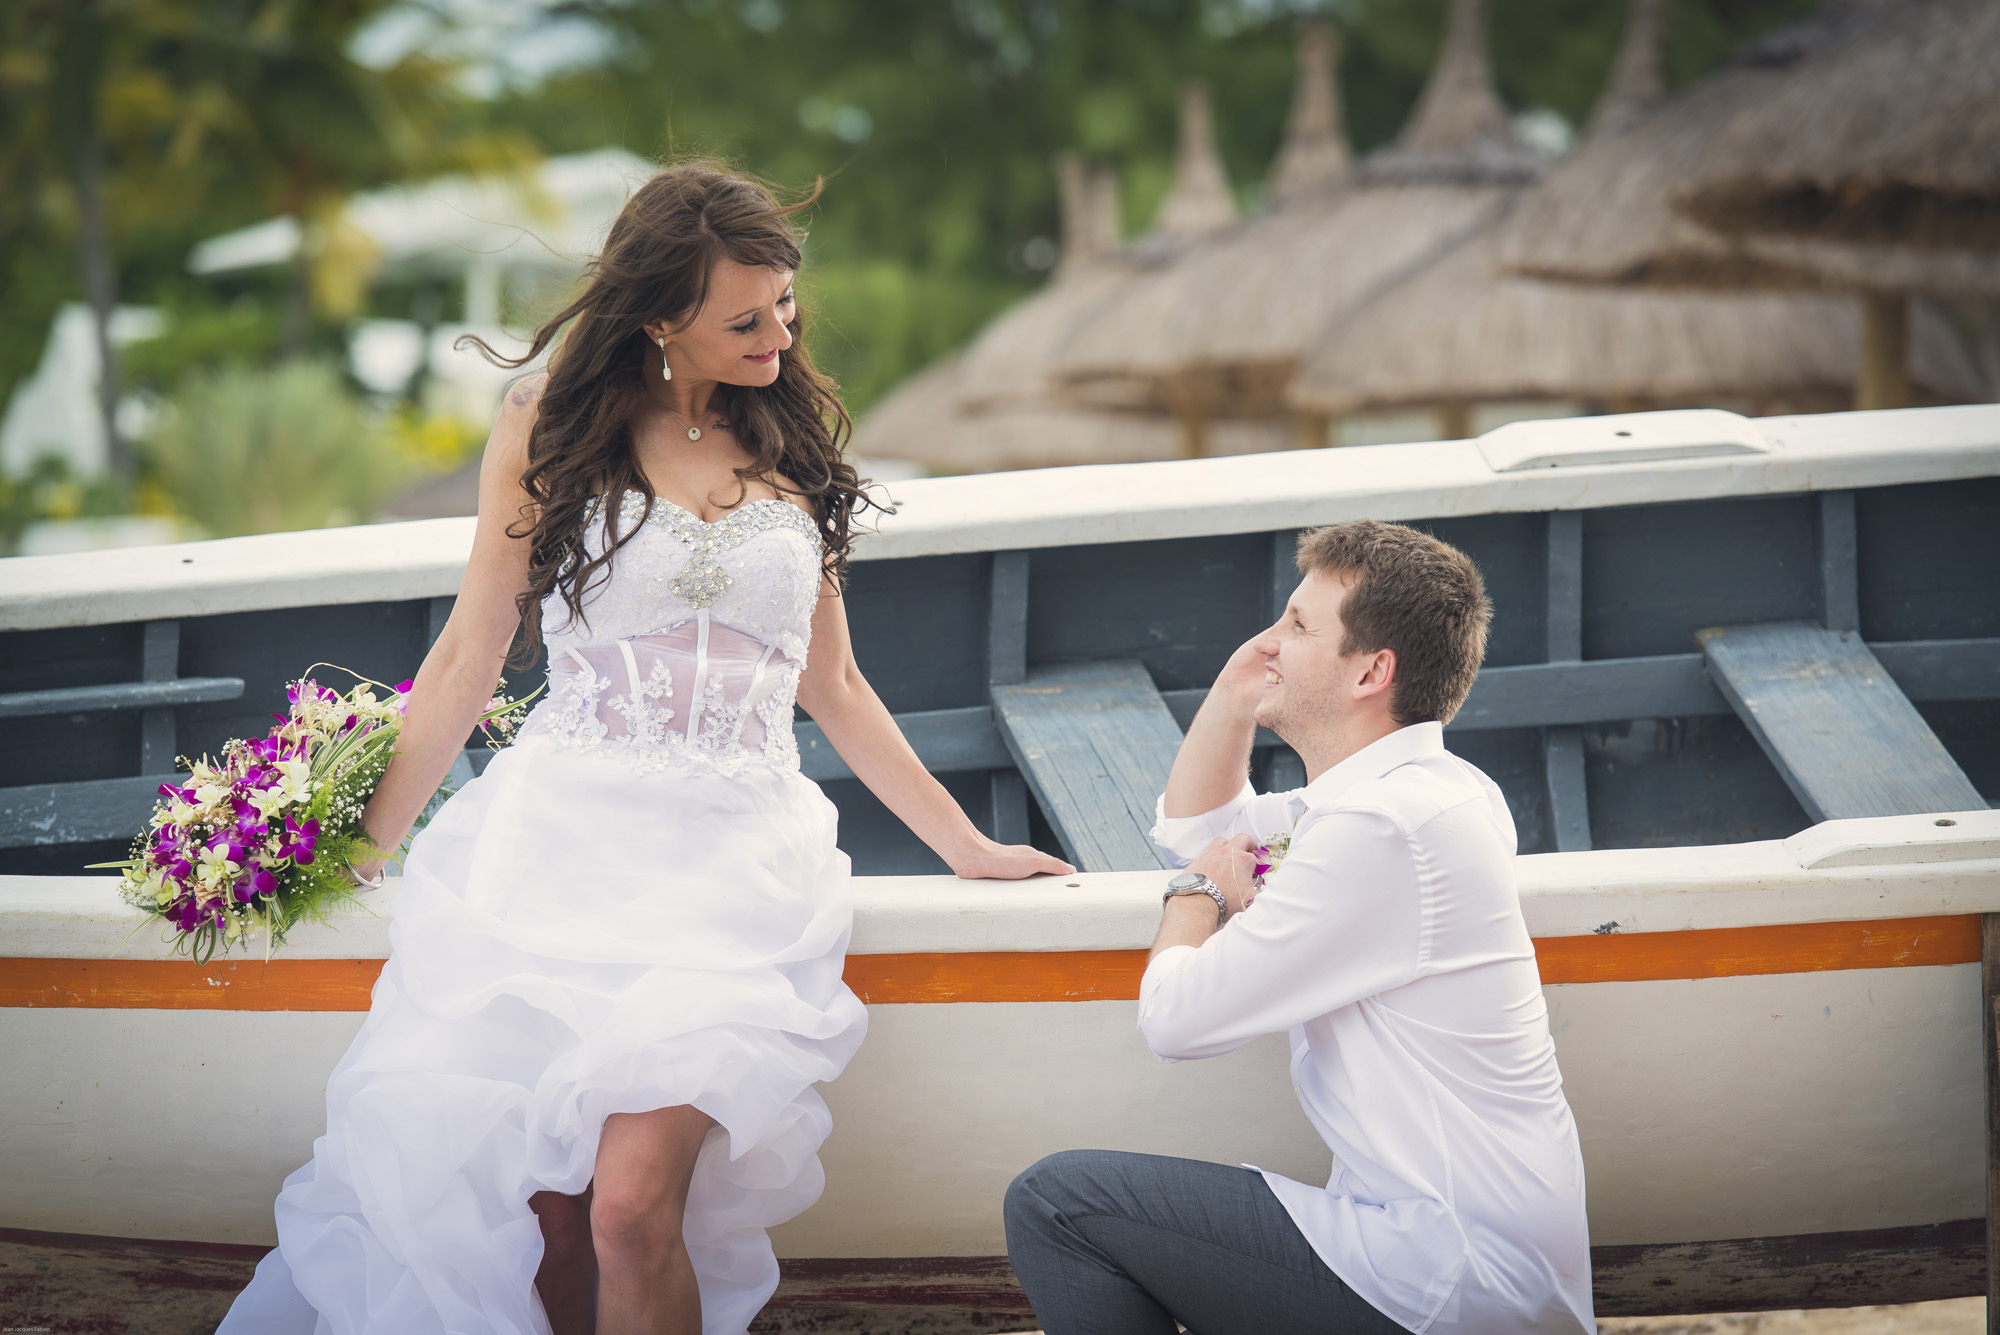 Justyna and Michael-177.jpg